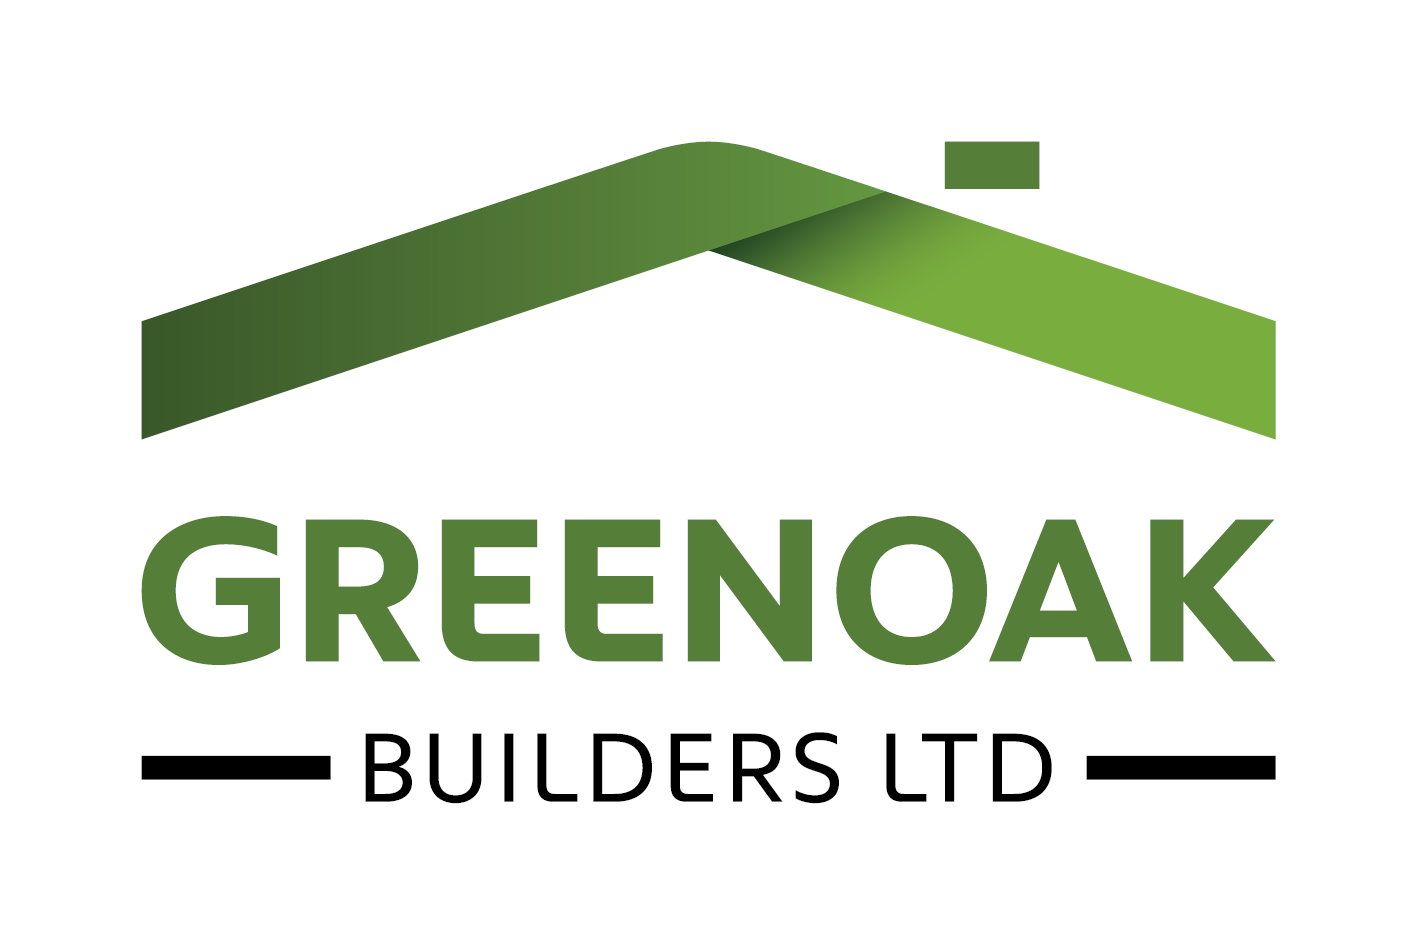 Greenoak Builders Ltd